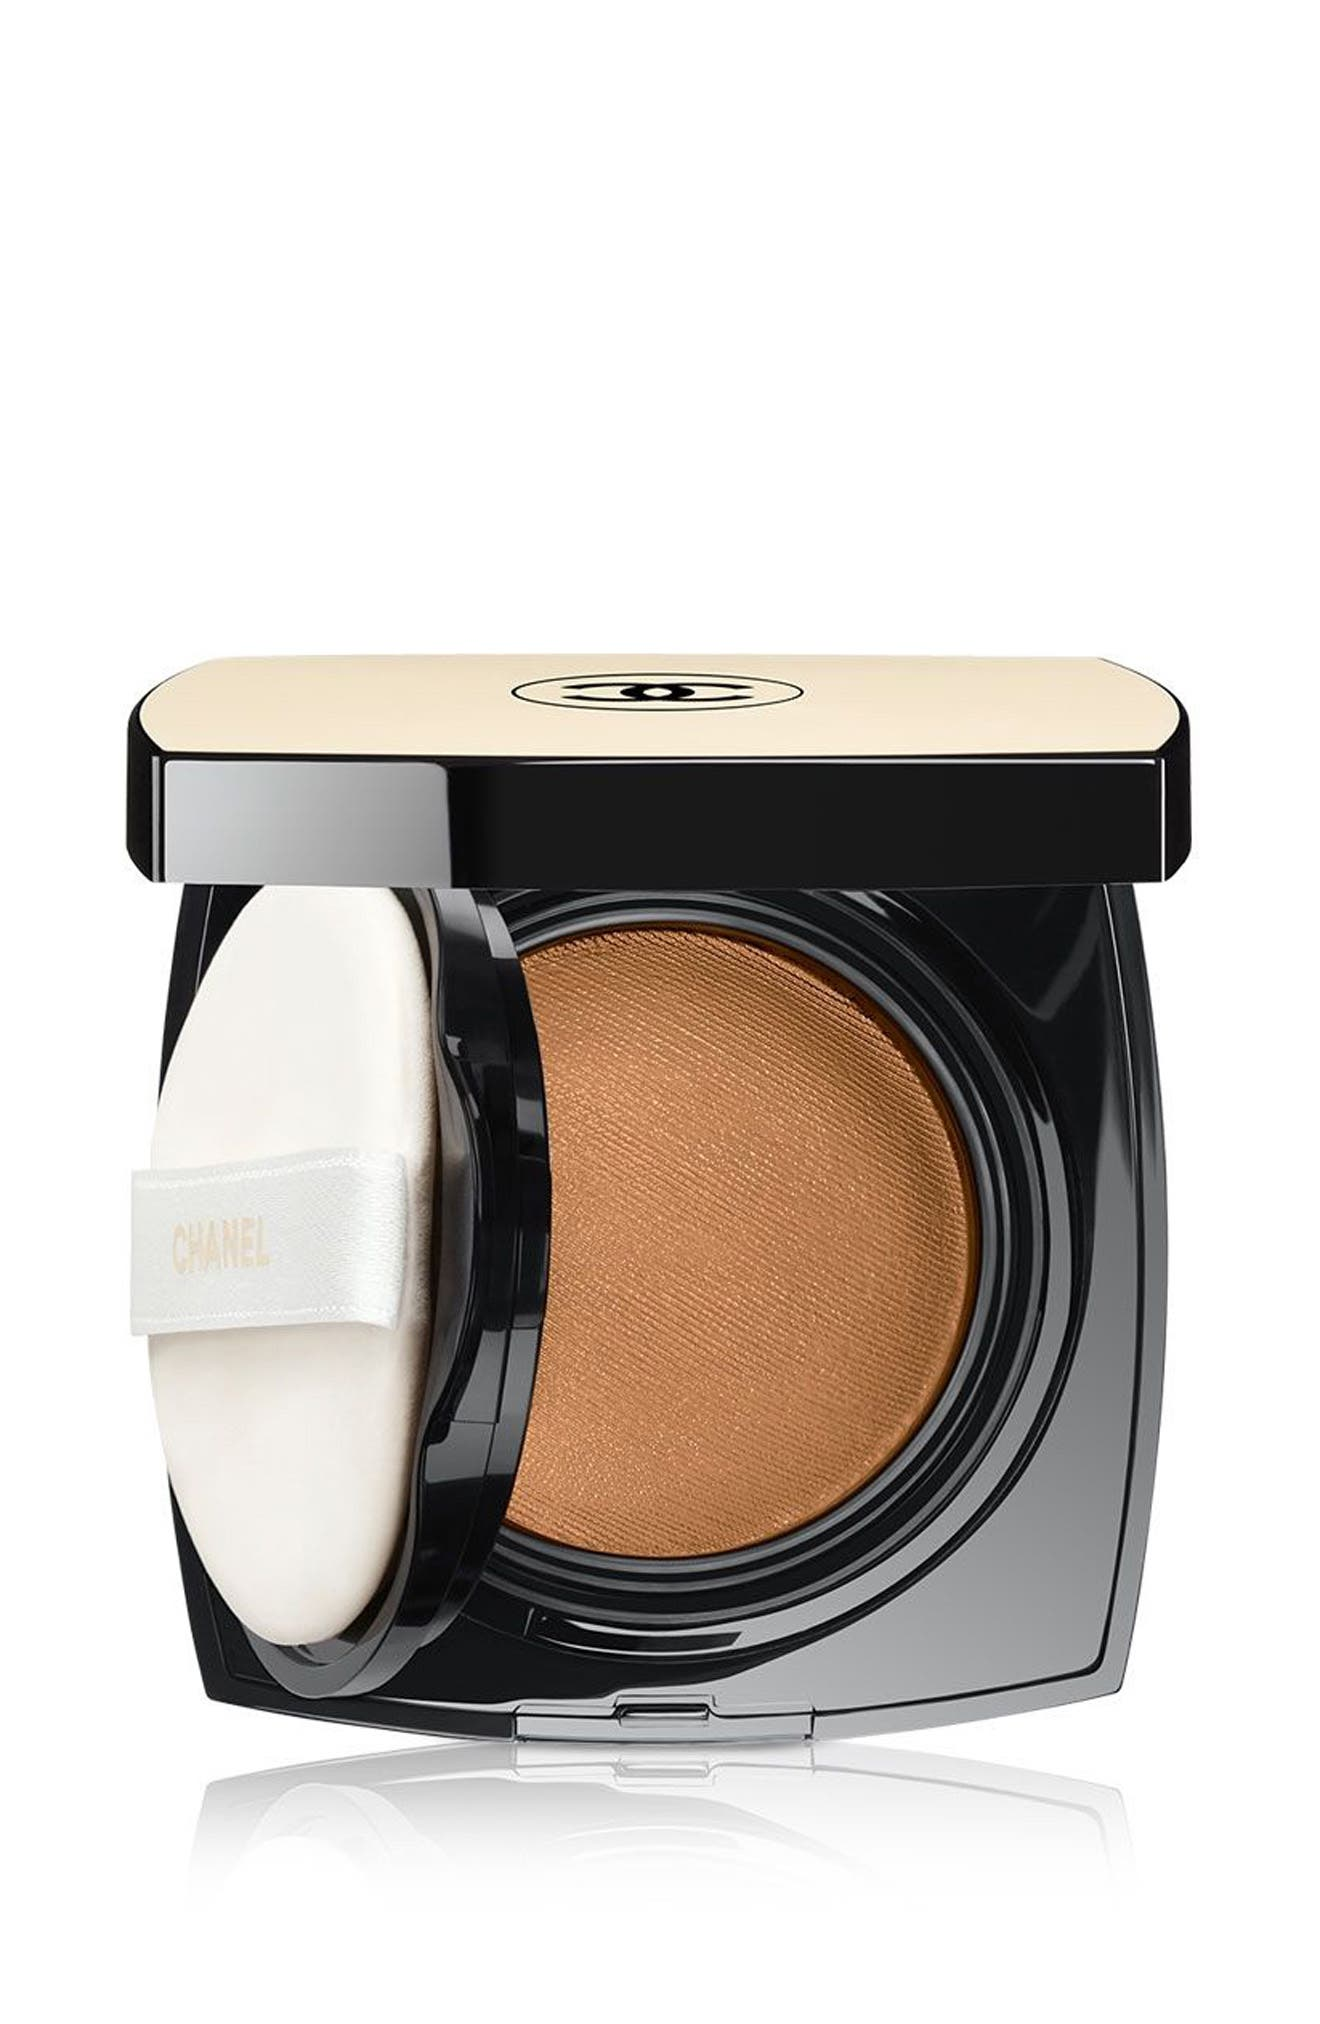 Main Image - CHANEL LES BEIGES Gel Touch Healthy Glow Tint Broad Spectrum SPF 15